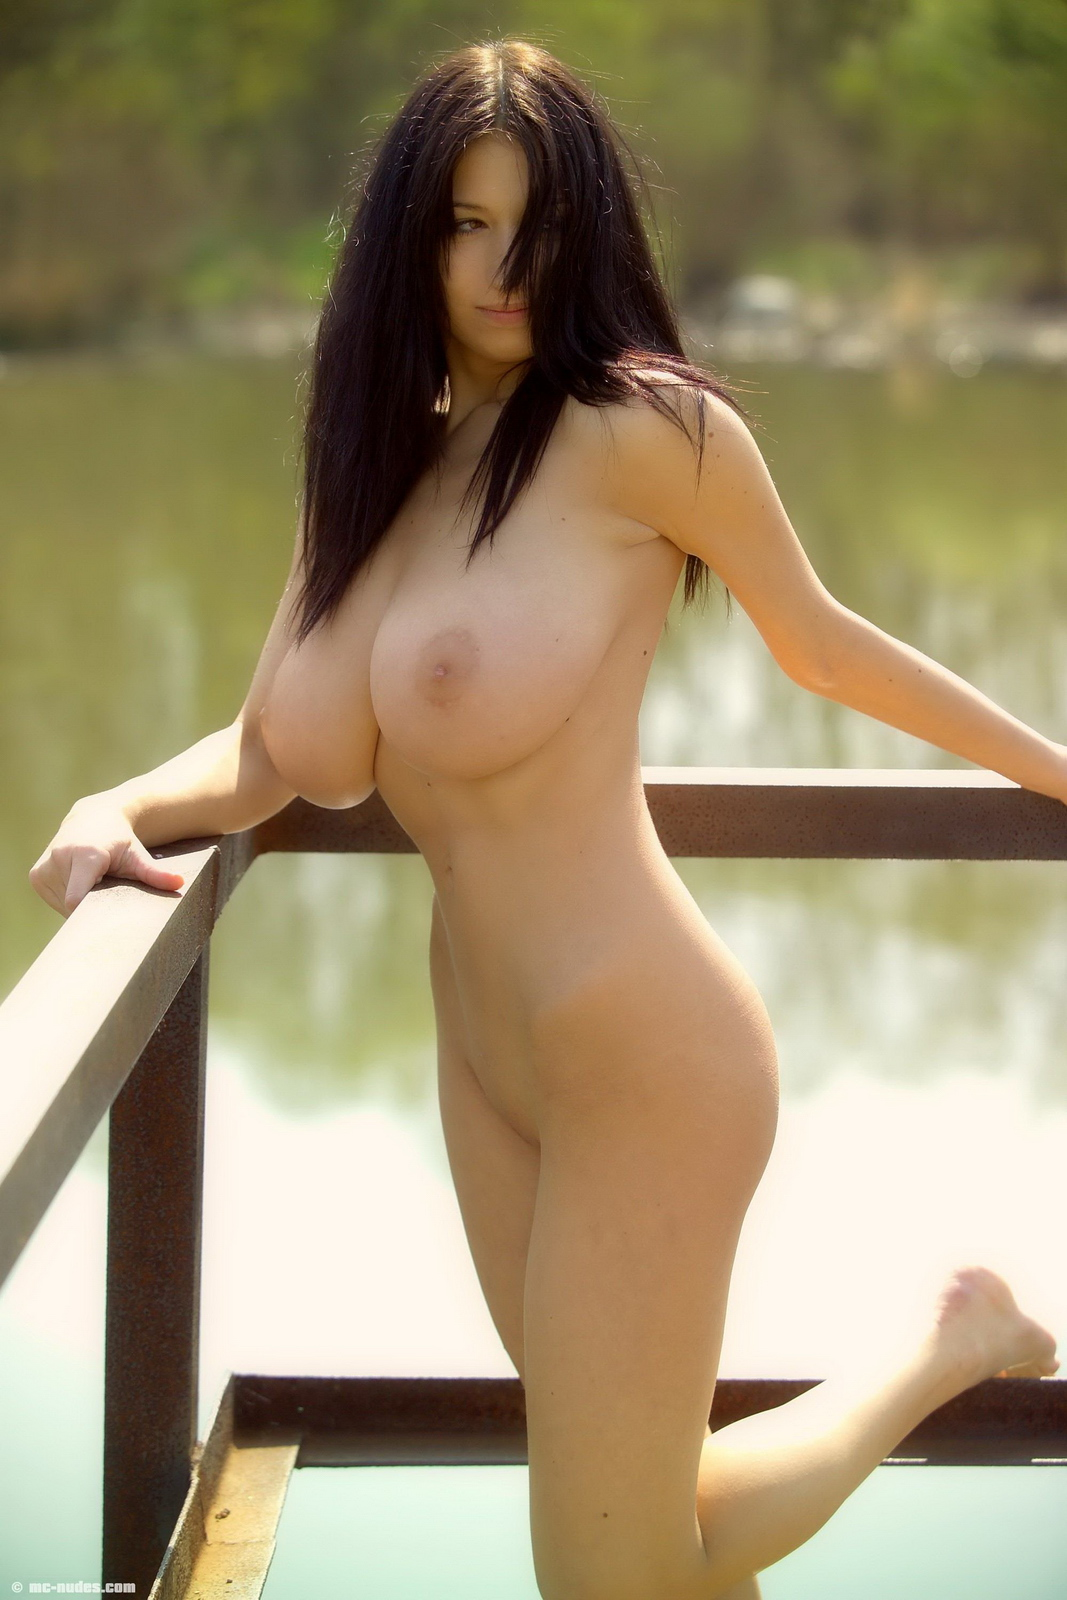 princessa-huge-tits-lake-brunette-naked-mcnudes-13